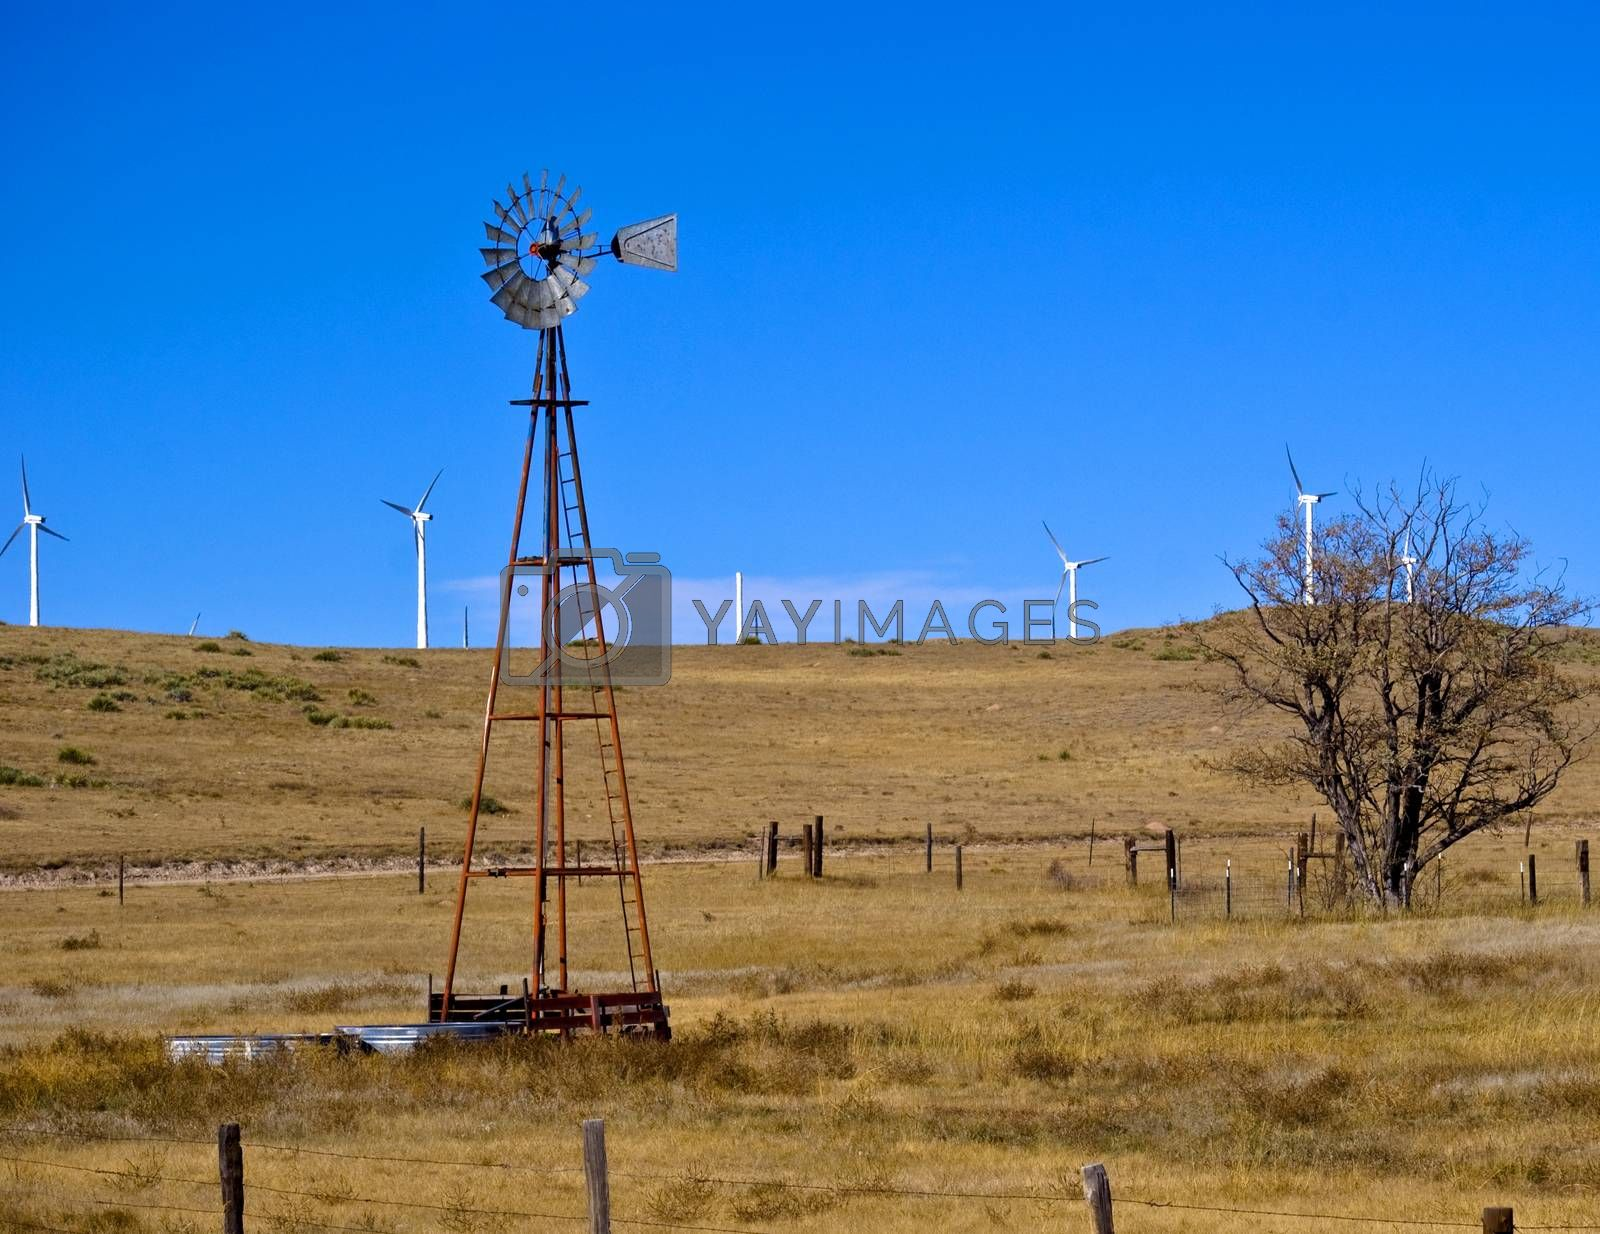 An old wind driven water well is surrounded by new wind generators.